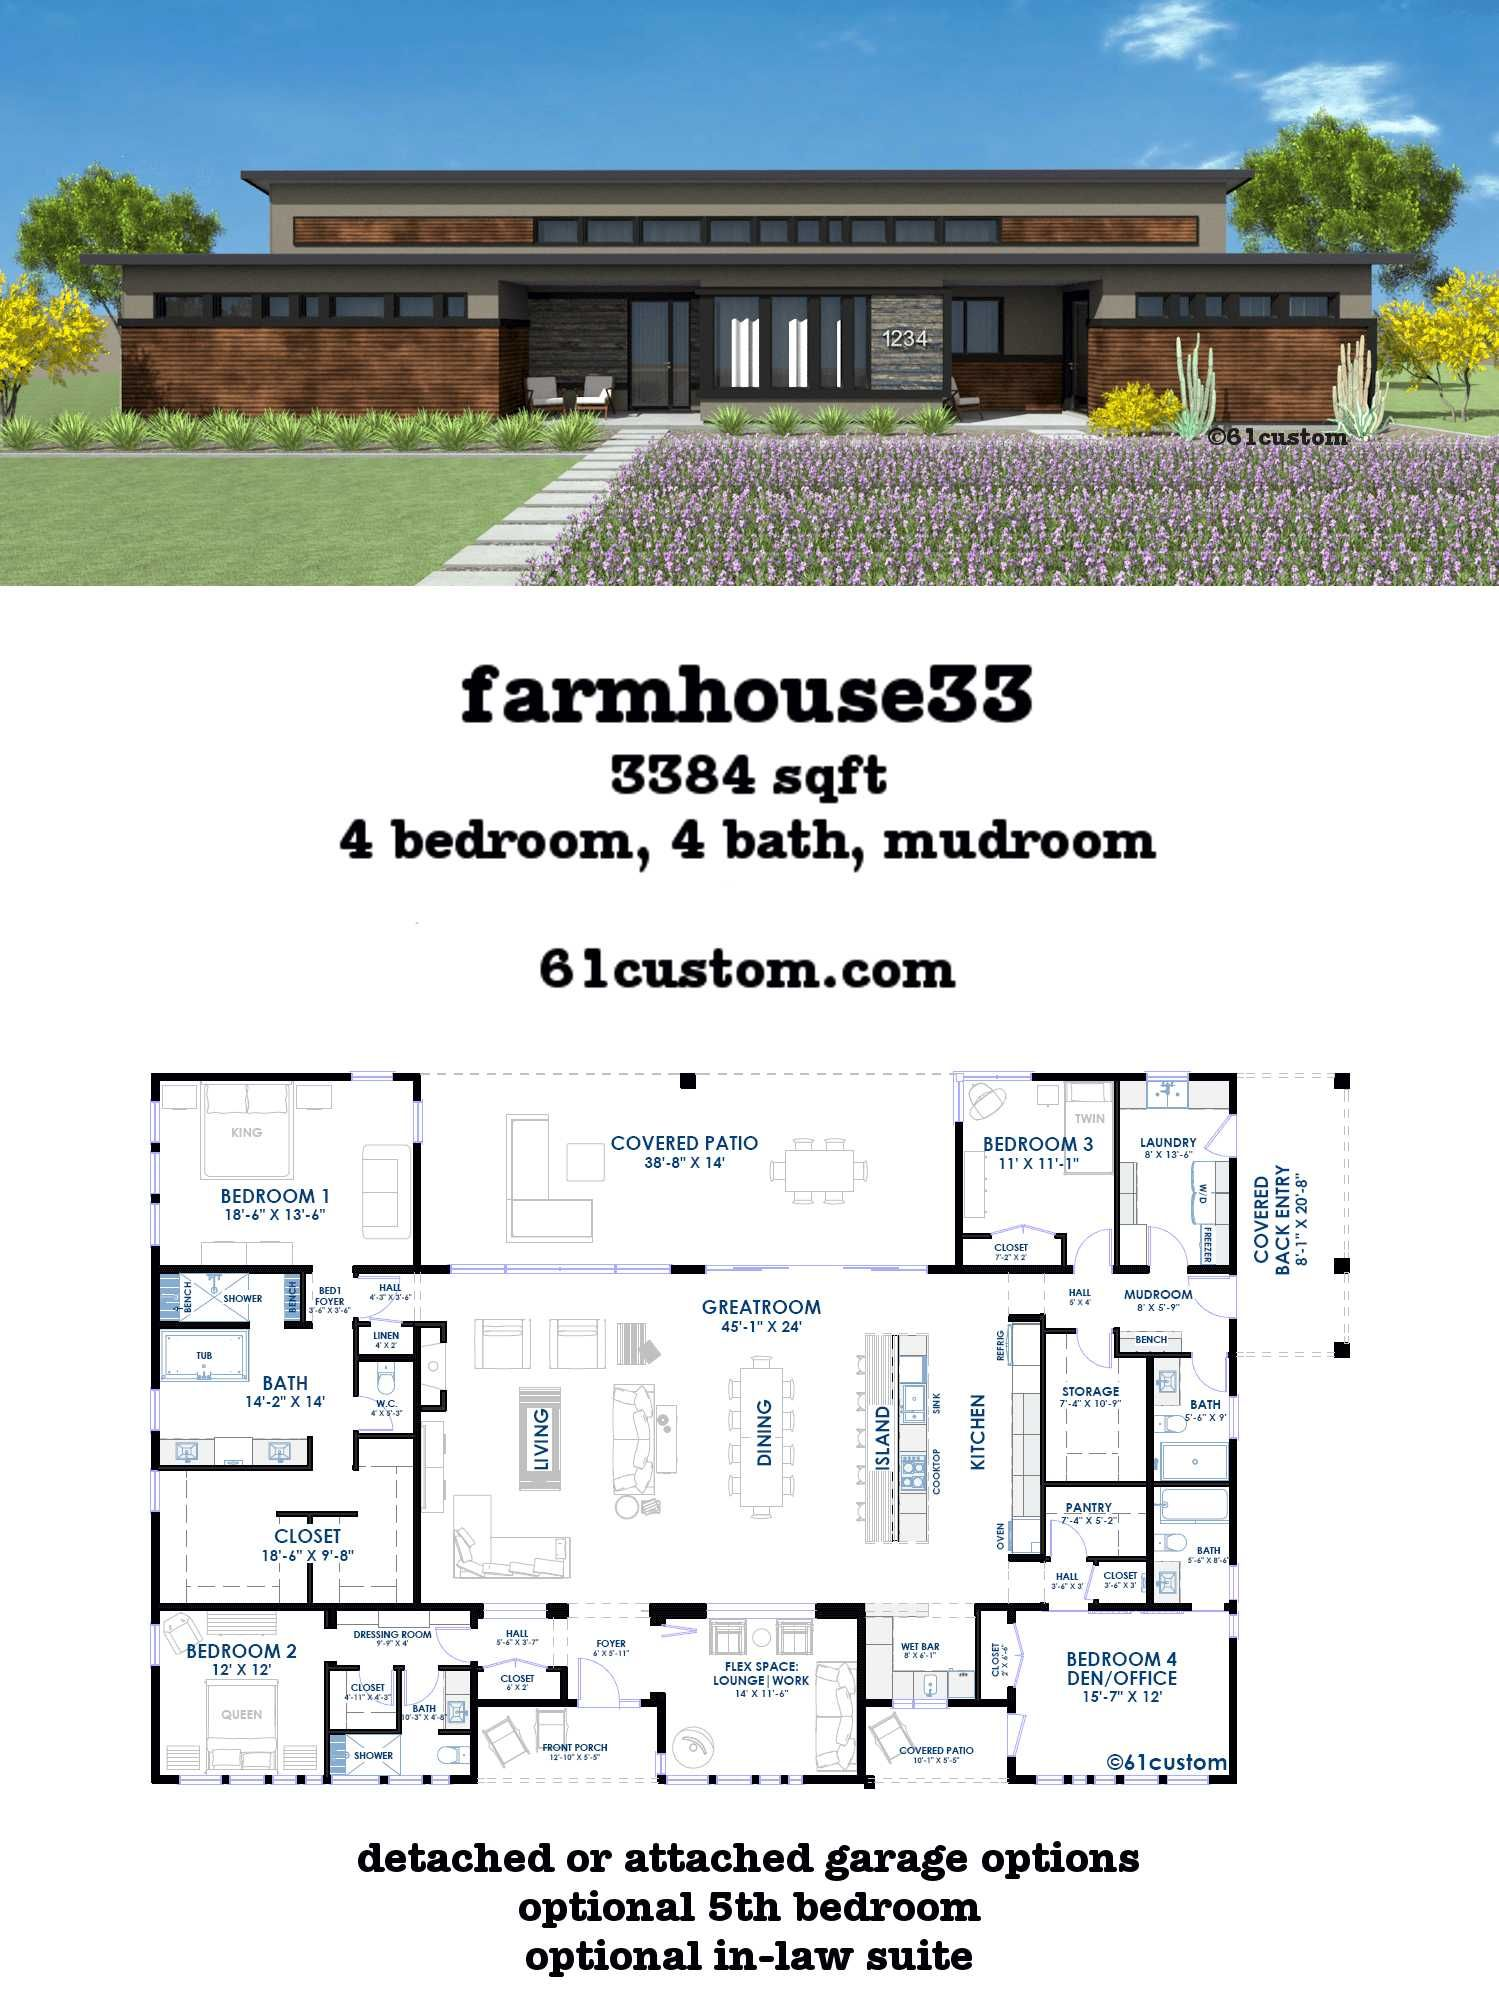 Single Story Modern Farmhouse Open Floor Plans Inspirational Farmhouse33 Modern Farmhouse Plan Modern Farmhouse Plans Farmhouse Plans Dream House Plans